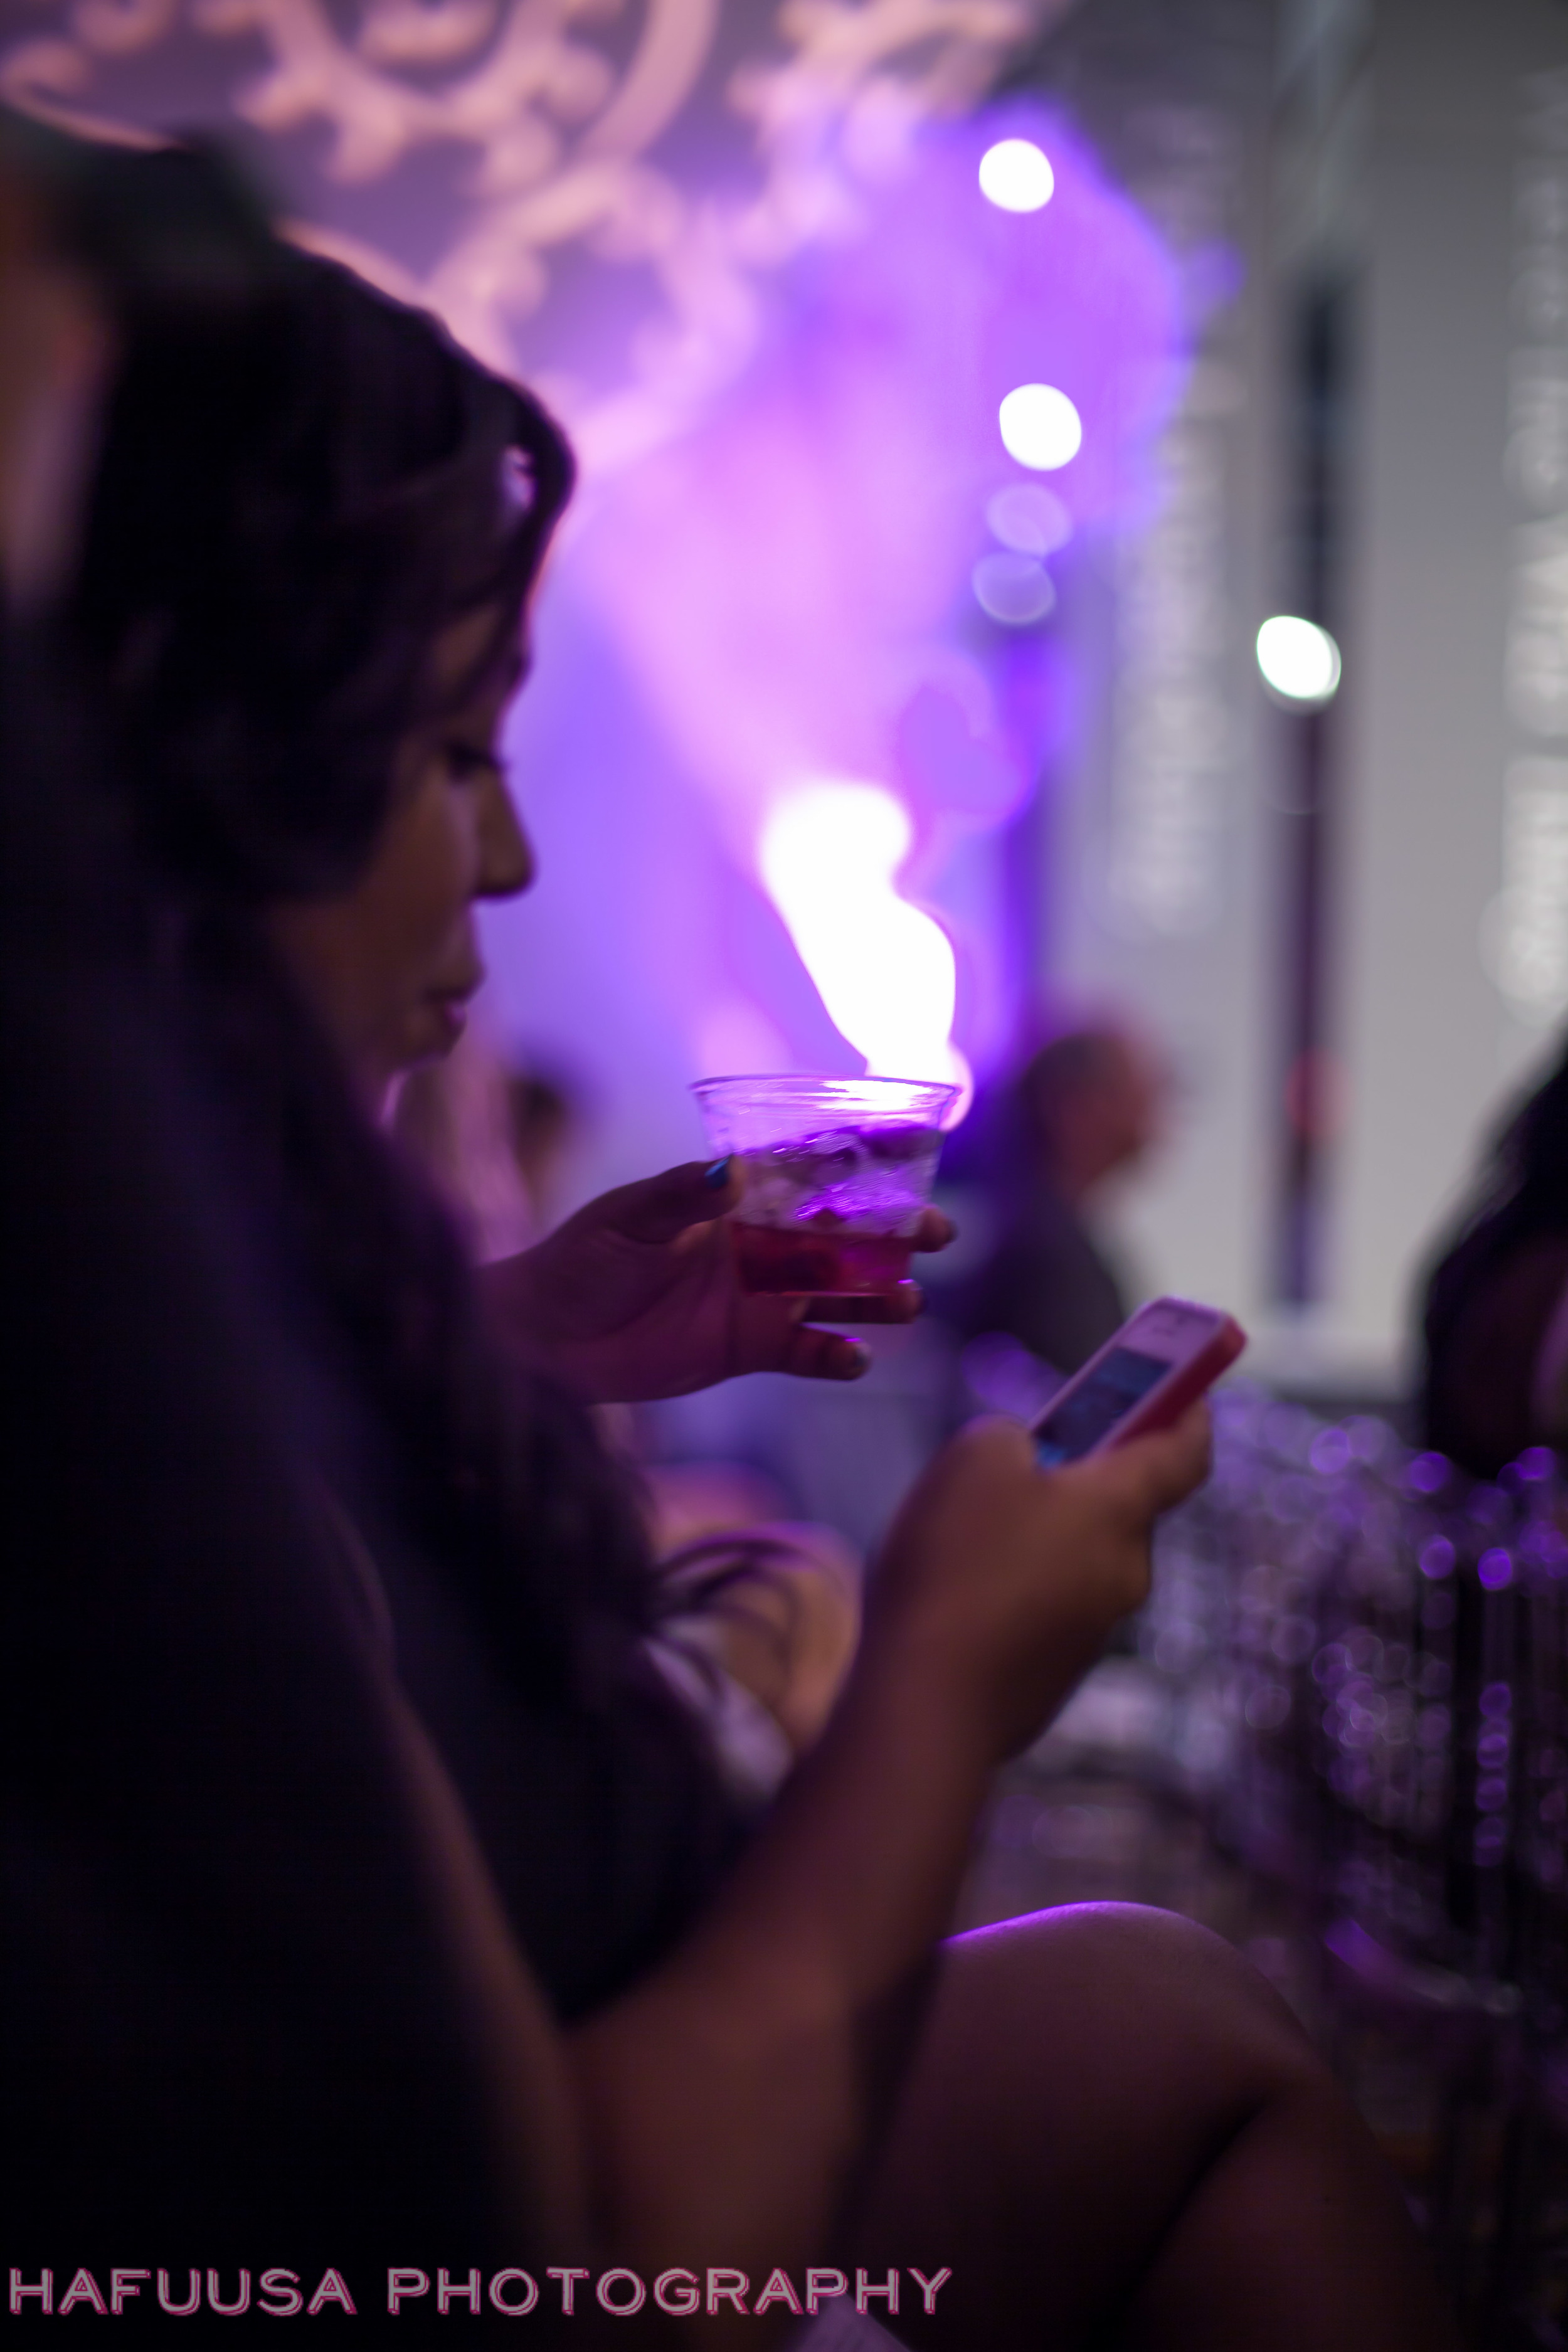 Social media in the front row